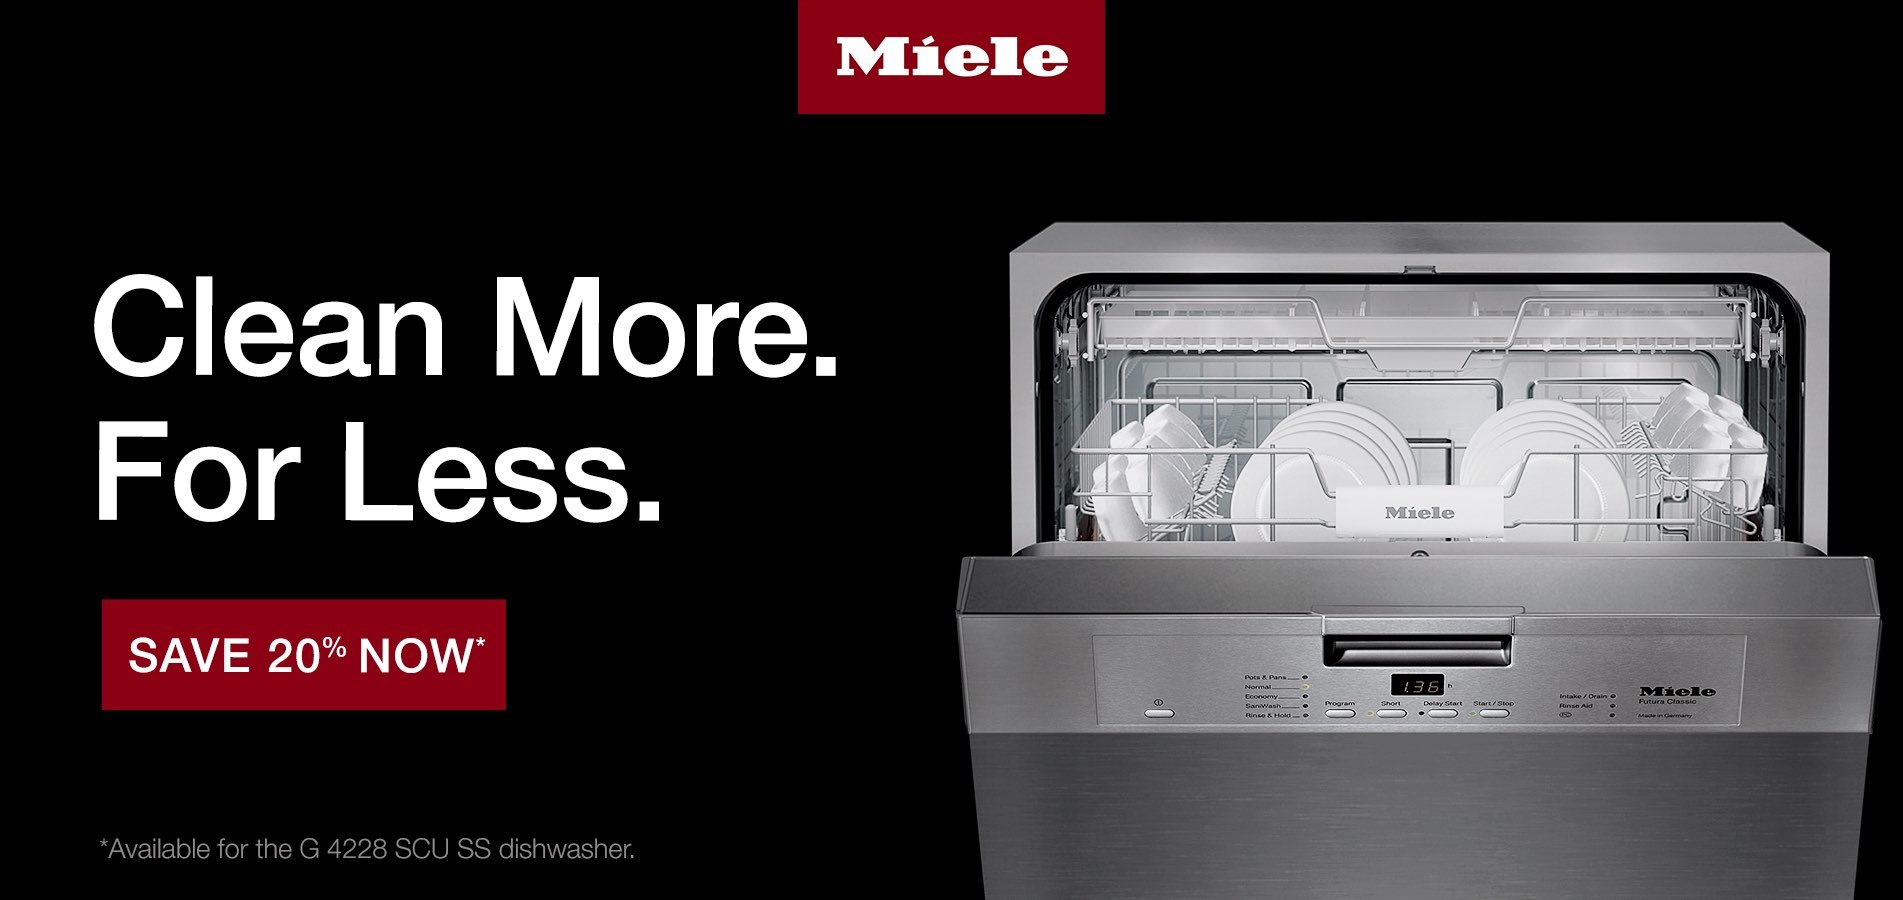 Miele Clean More For Less